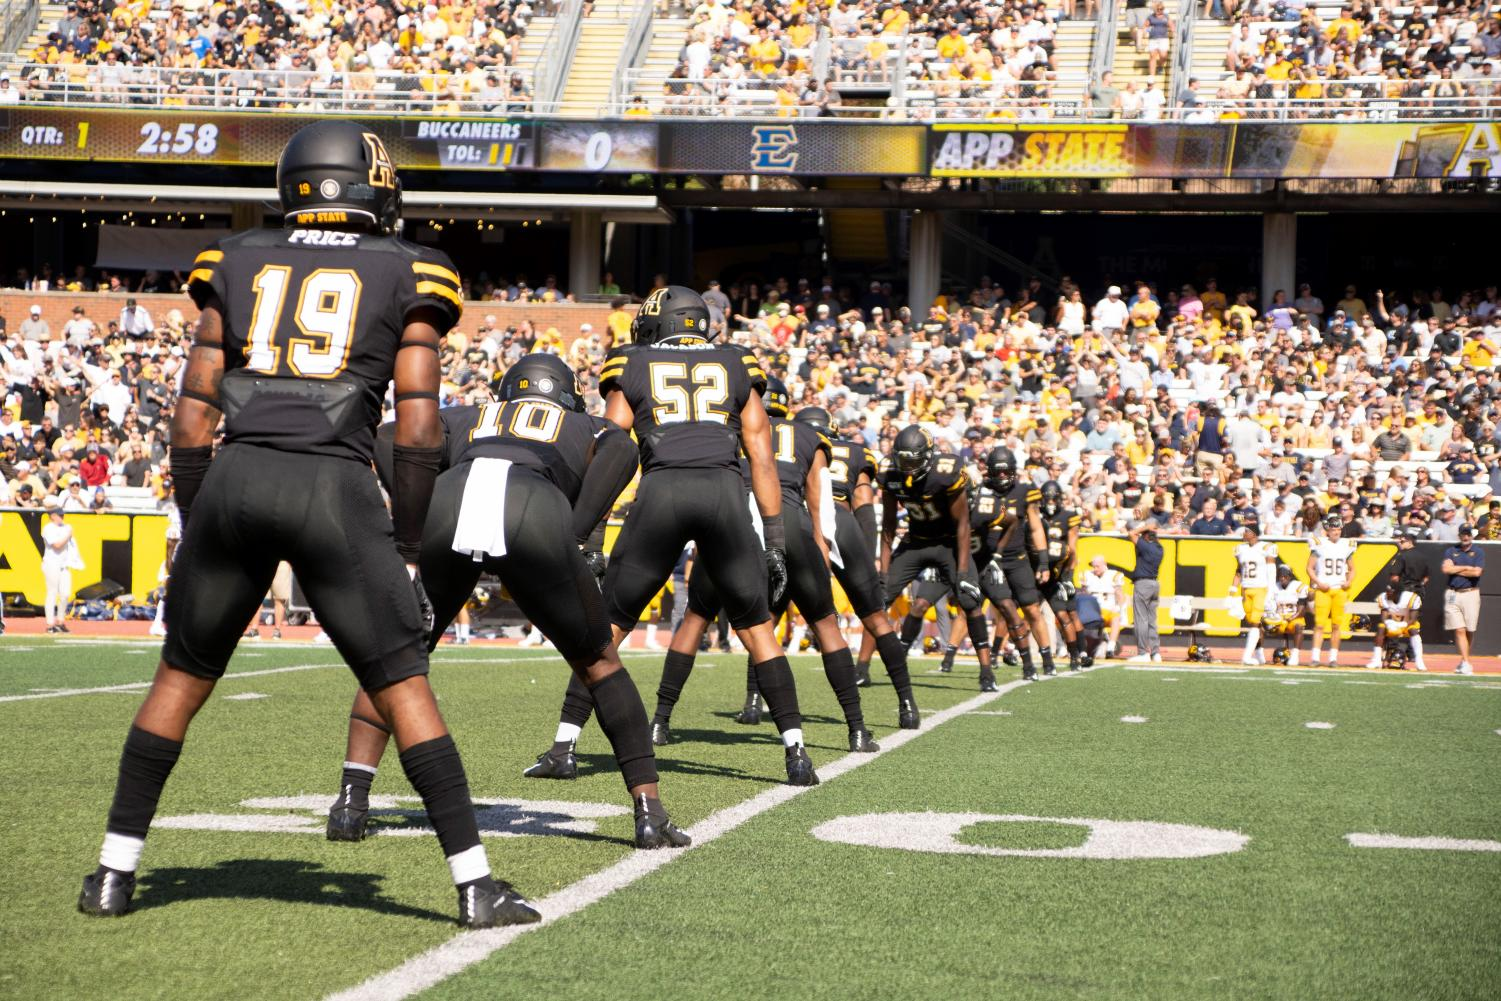 App State's special teams unit lines up for the opening kickoff of App State's 42-7 win over ETSU on Aug. 31. // Photo courtesy of App State Athletics